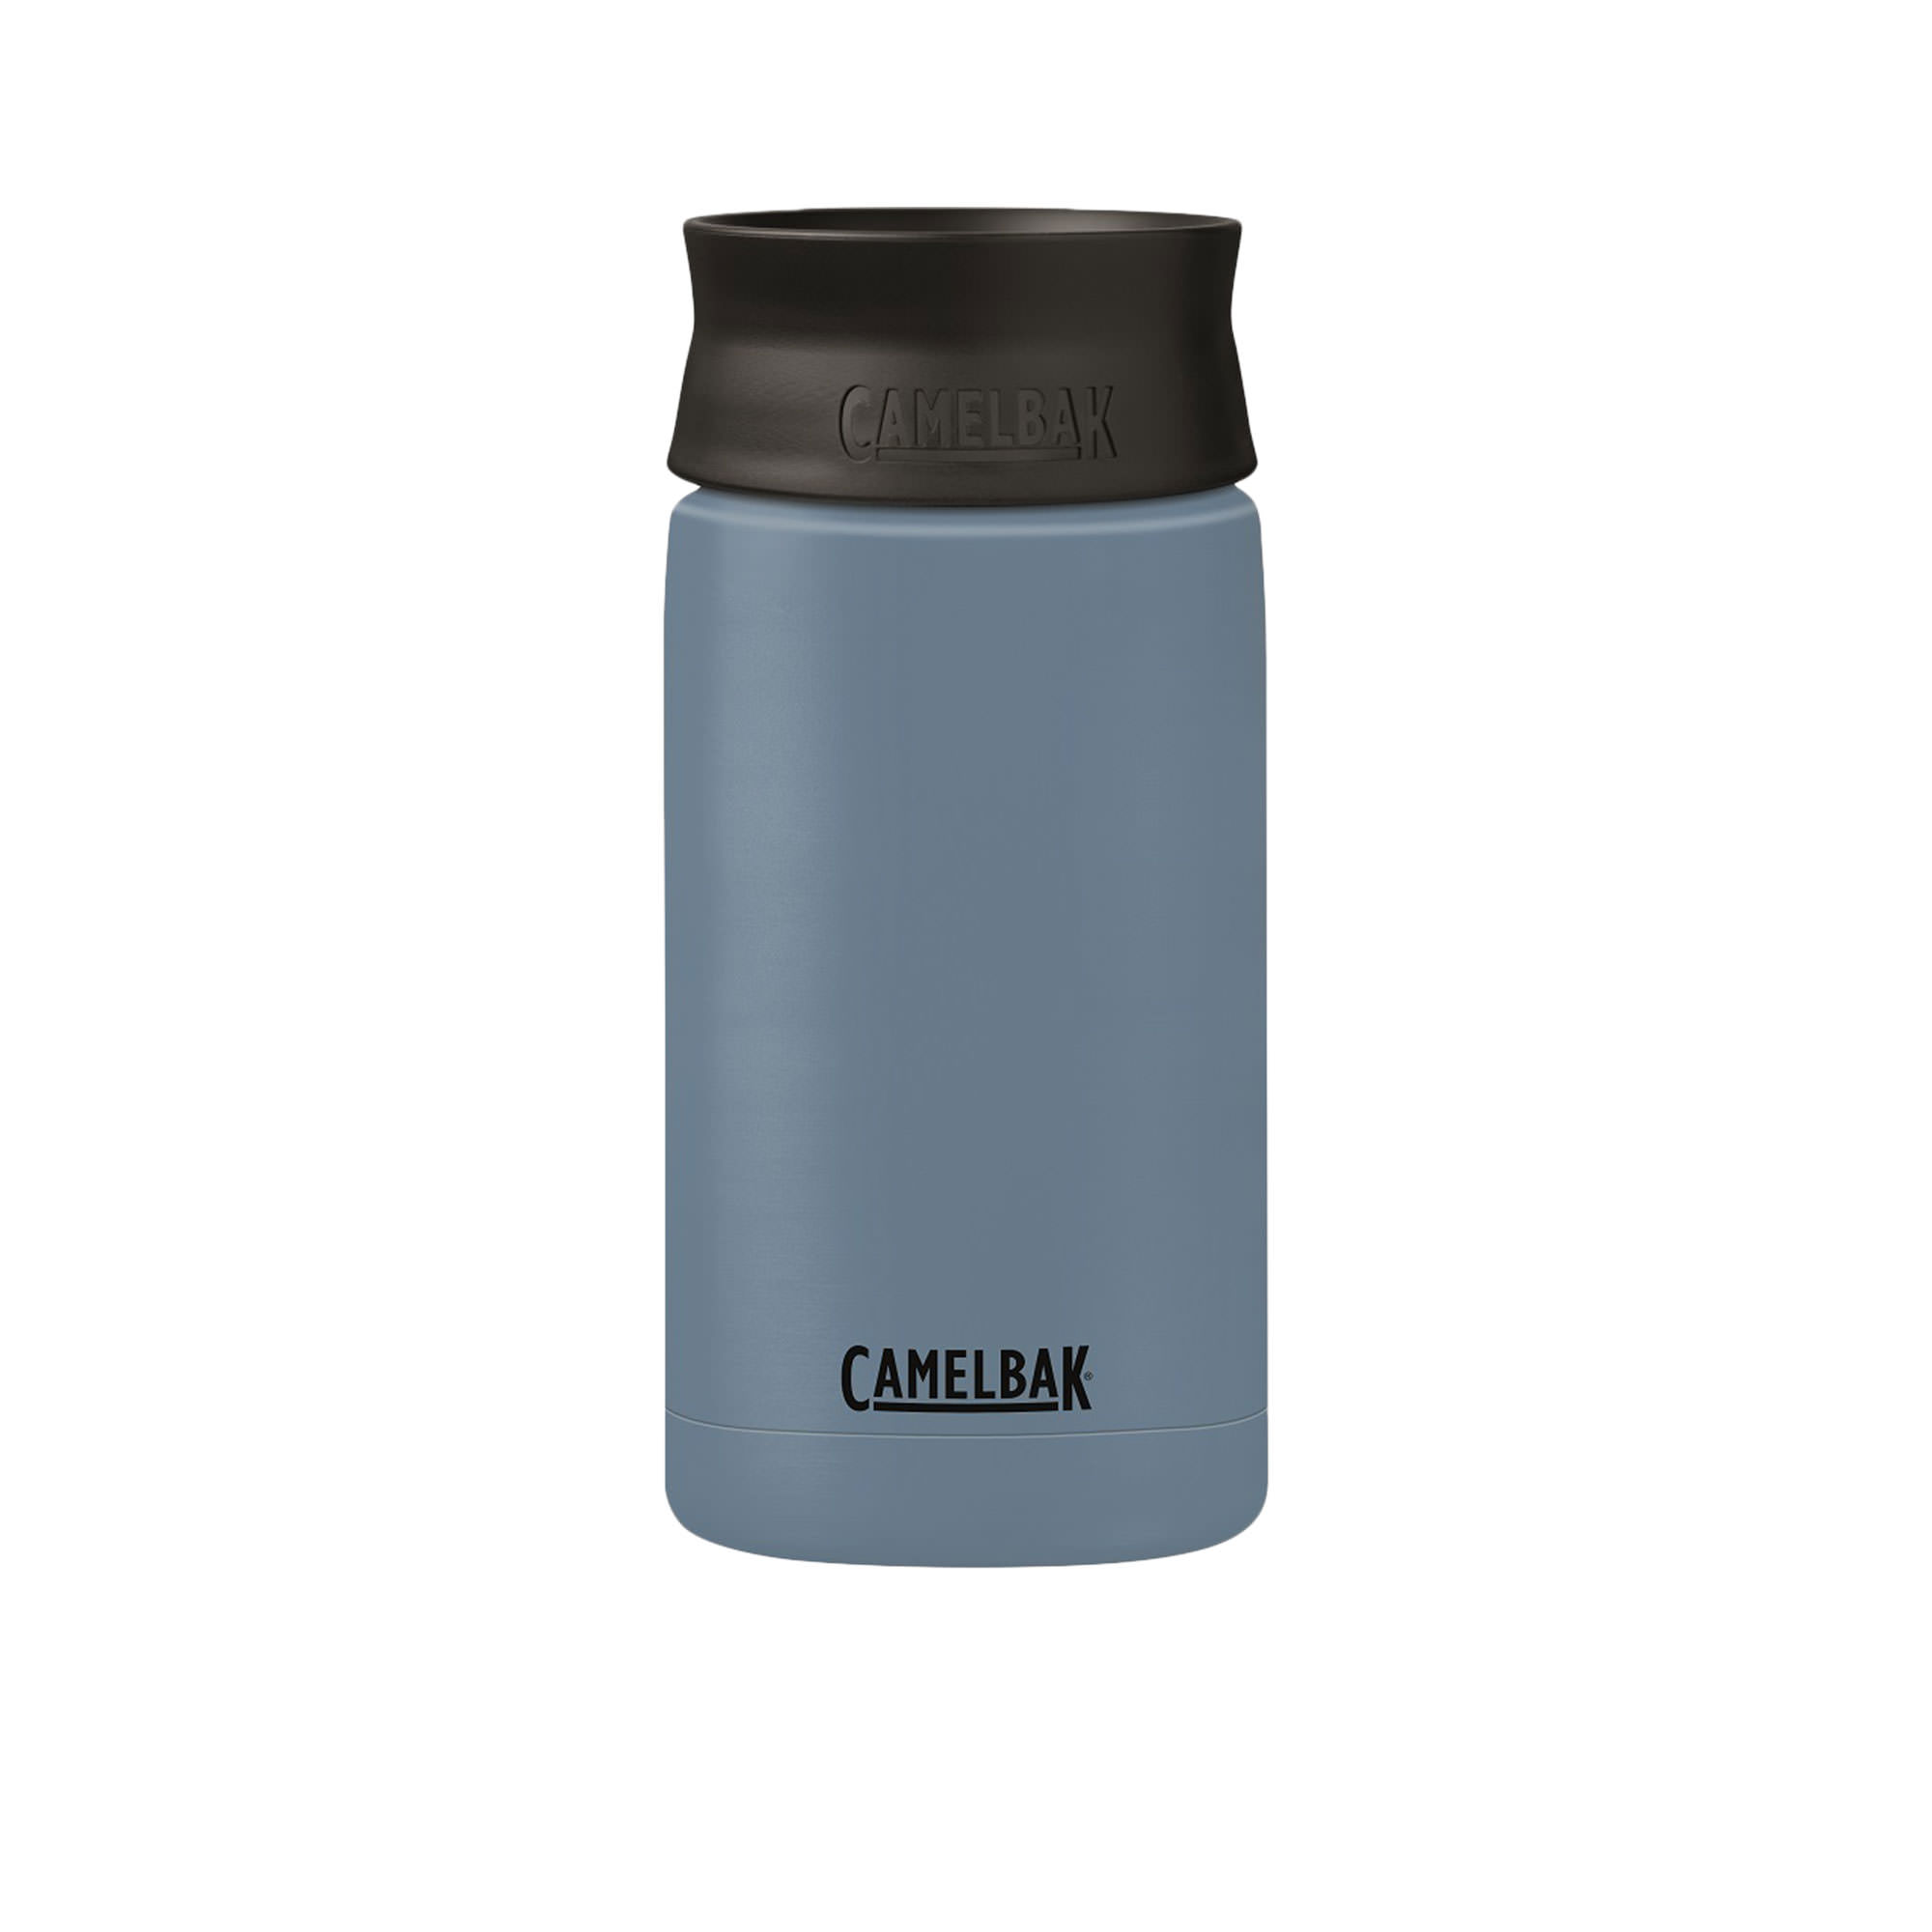 Camelbak Hot Cap Stainless Steel Insulated Reusable Cup 350ml Blue